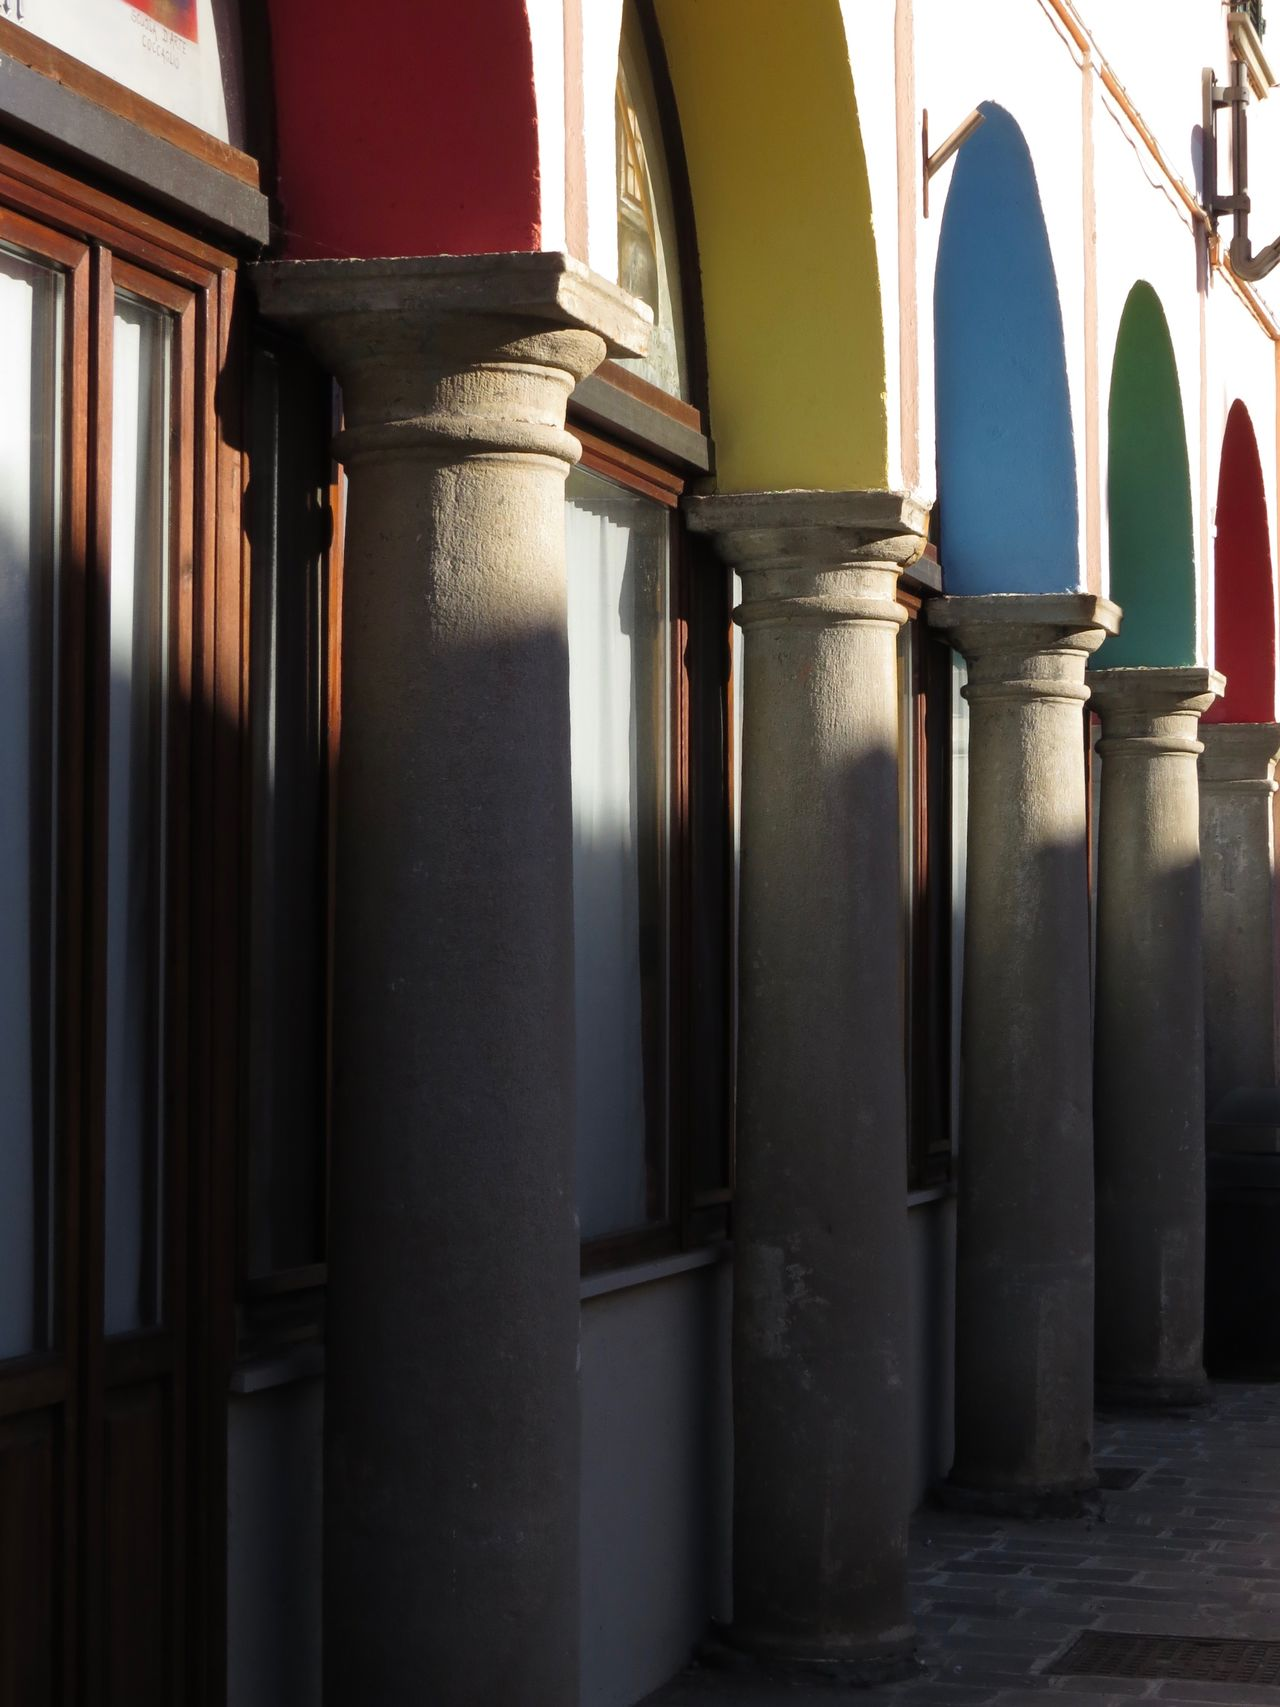 Arches Architecture Columns Diminishing Perspective In A Row Light And Shadow Multicolor No People Outdoors